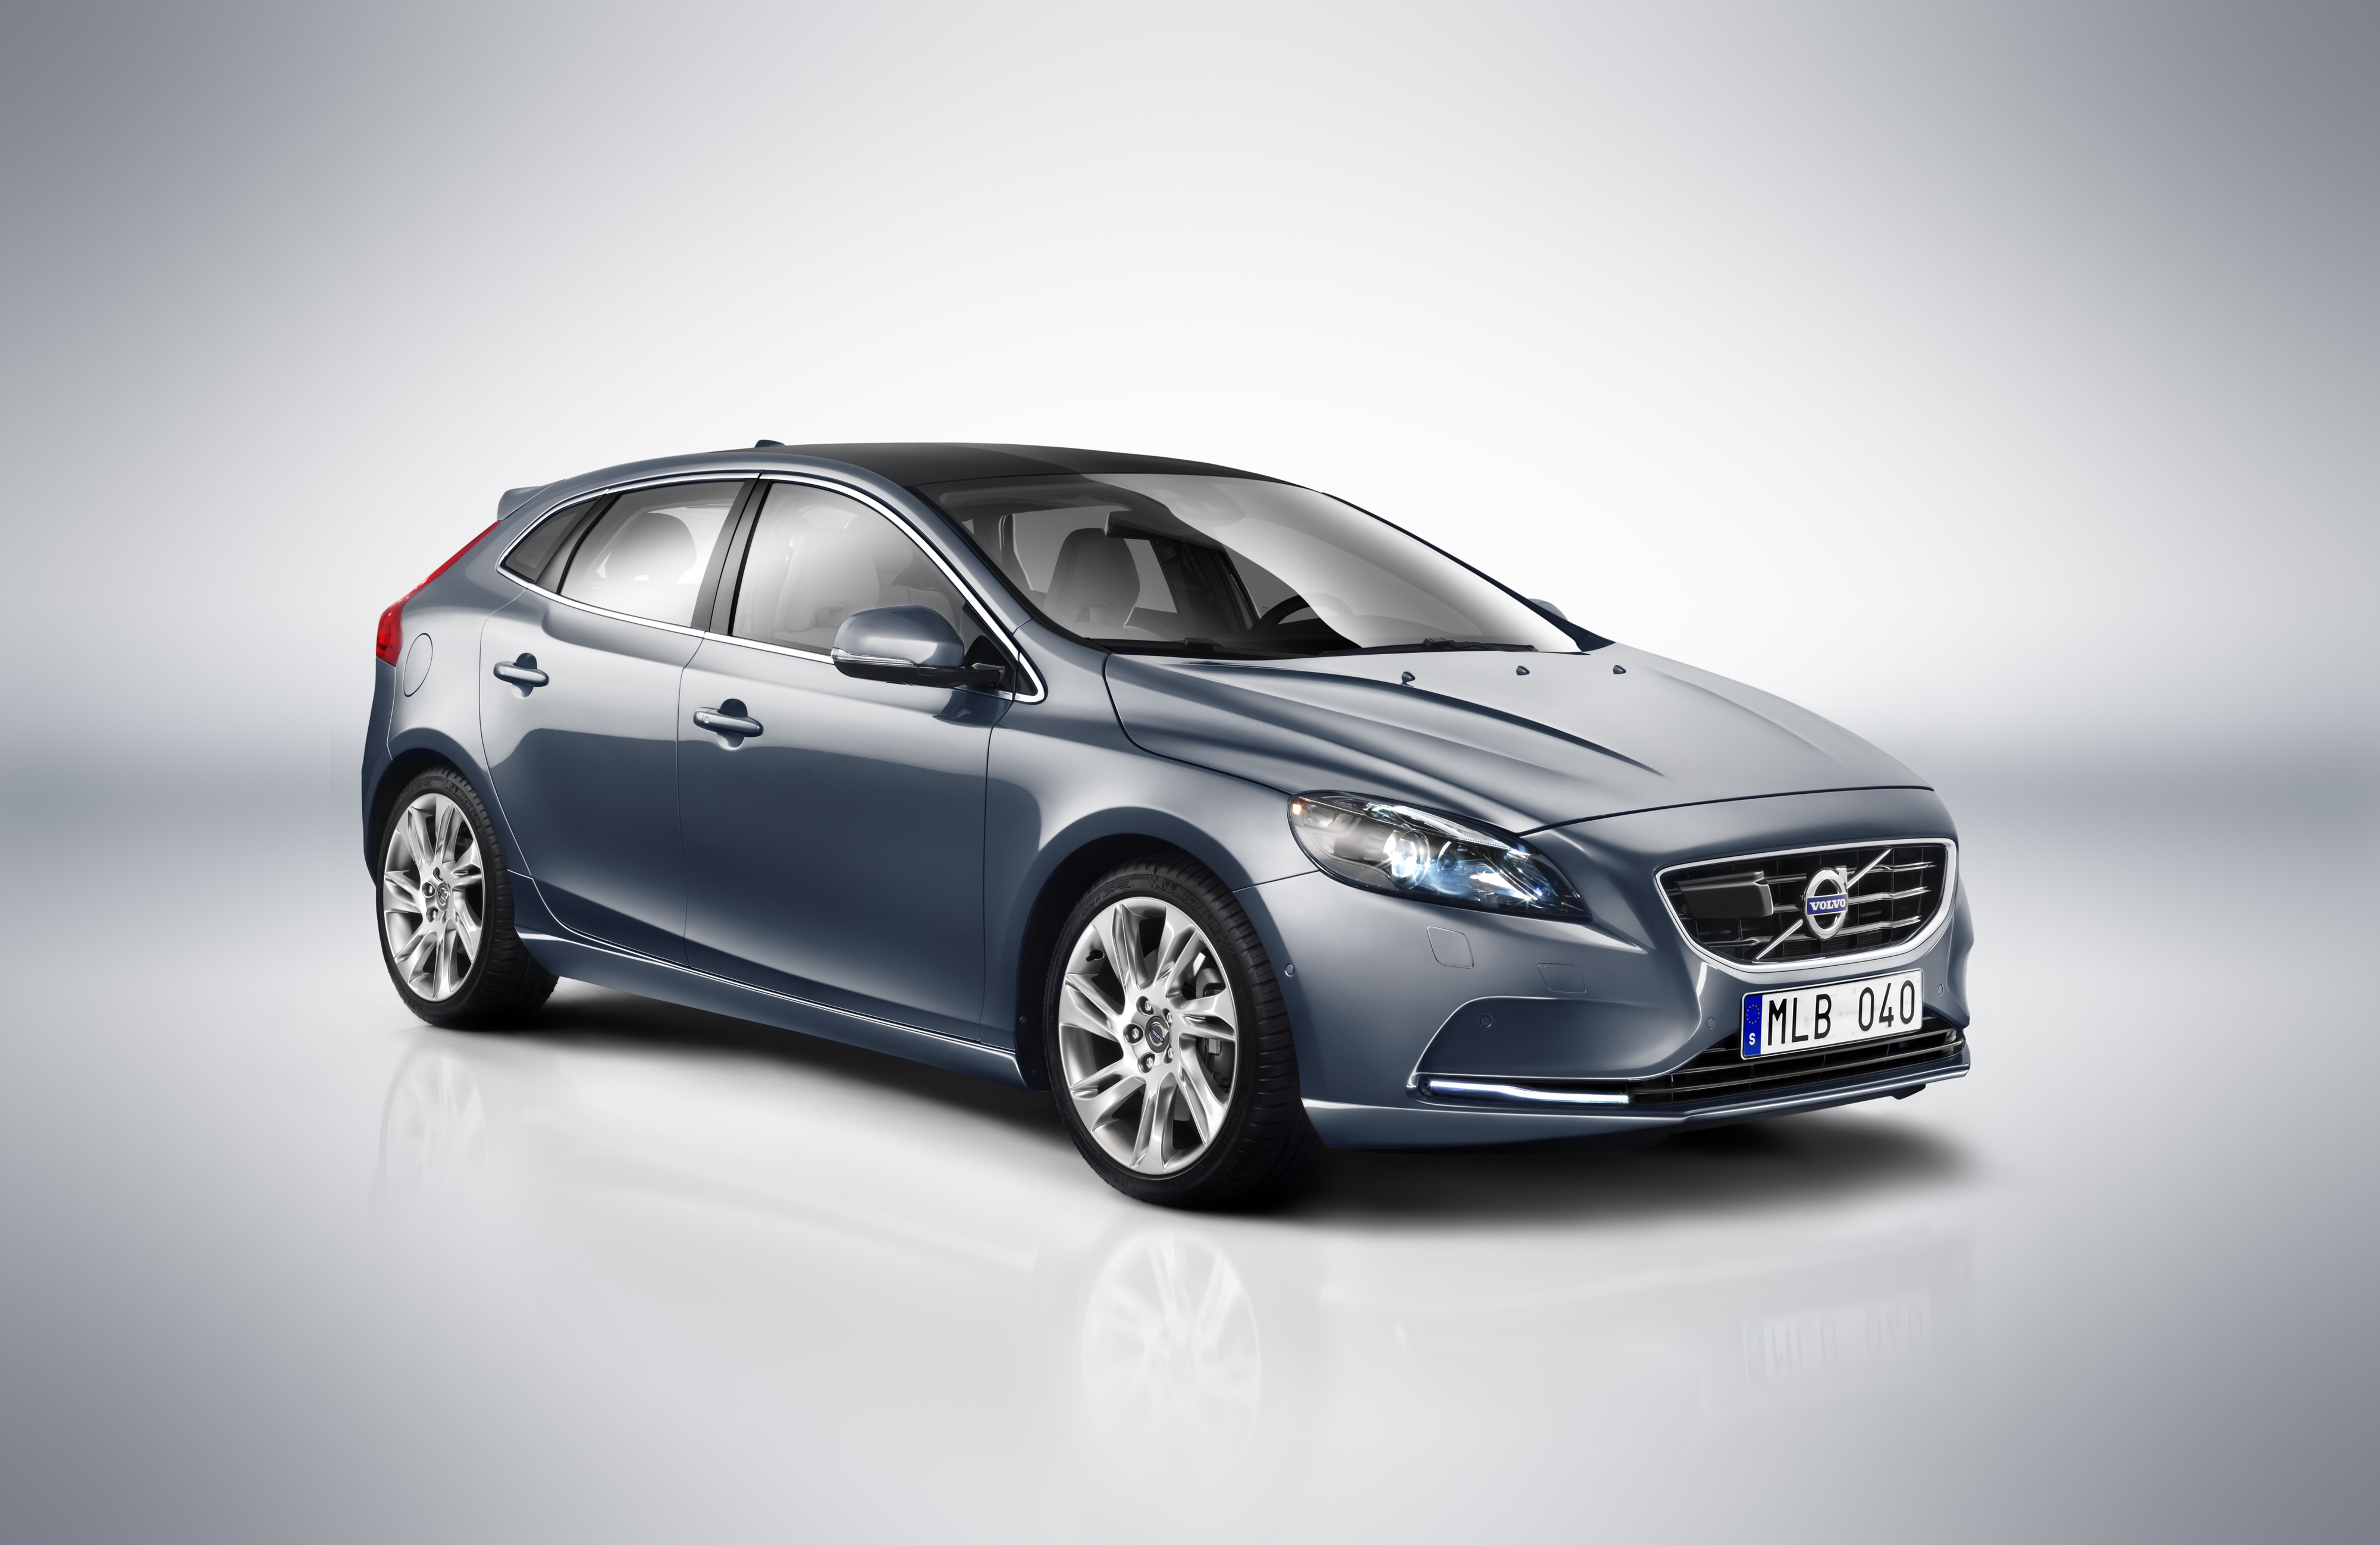 File Volvo V40 2012 Id42221 280212 Jpg Wikimedia Commons